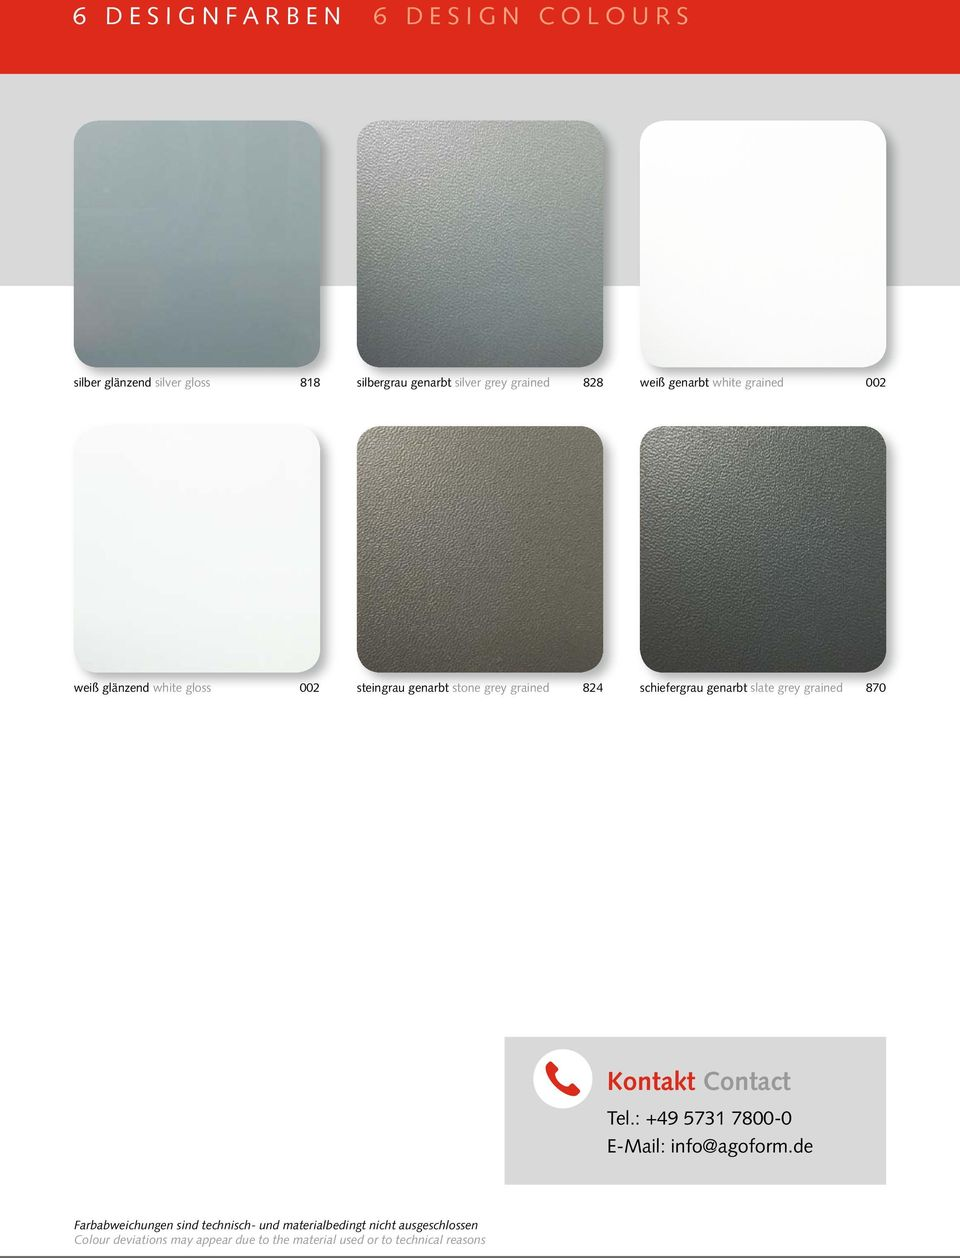 genarbt slate grey grained 870 Kontakt Contact Tel.: +49 5731 7800-0 E-Mail: info@agoform.